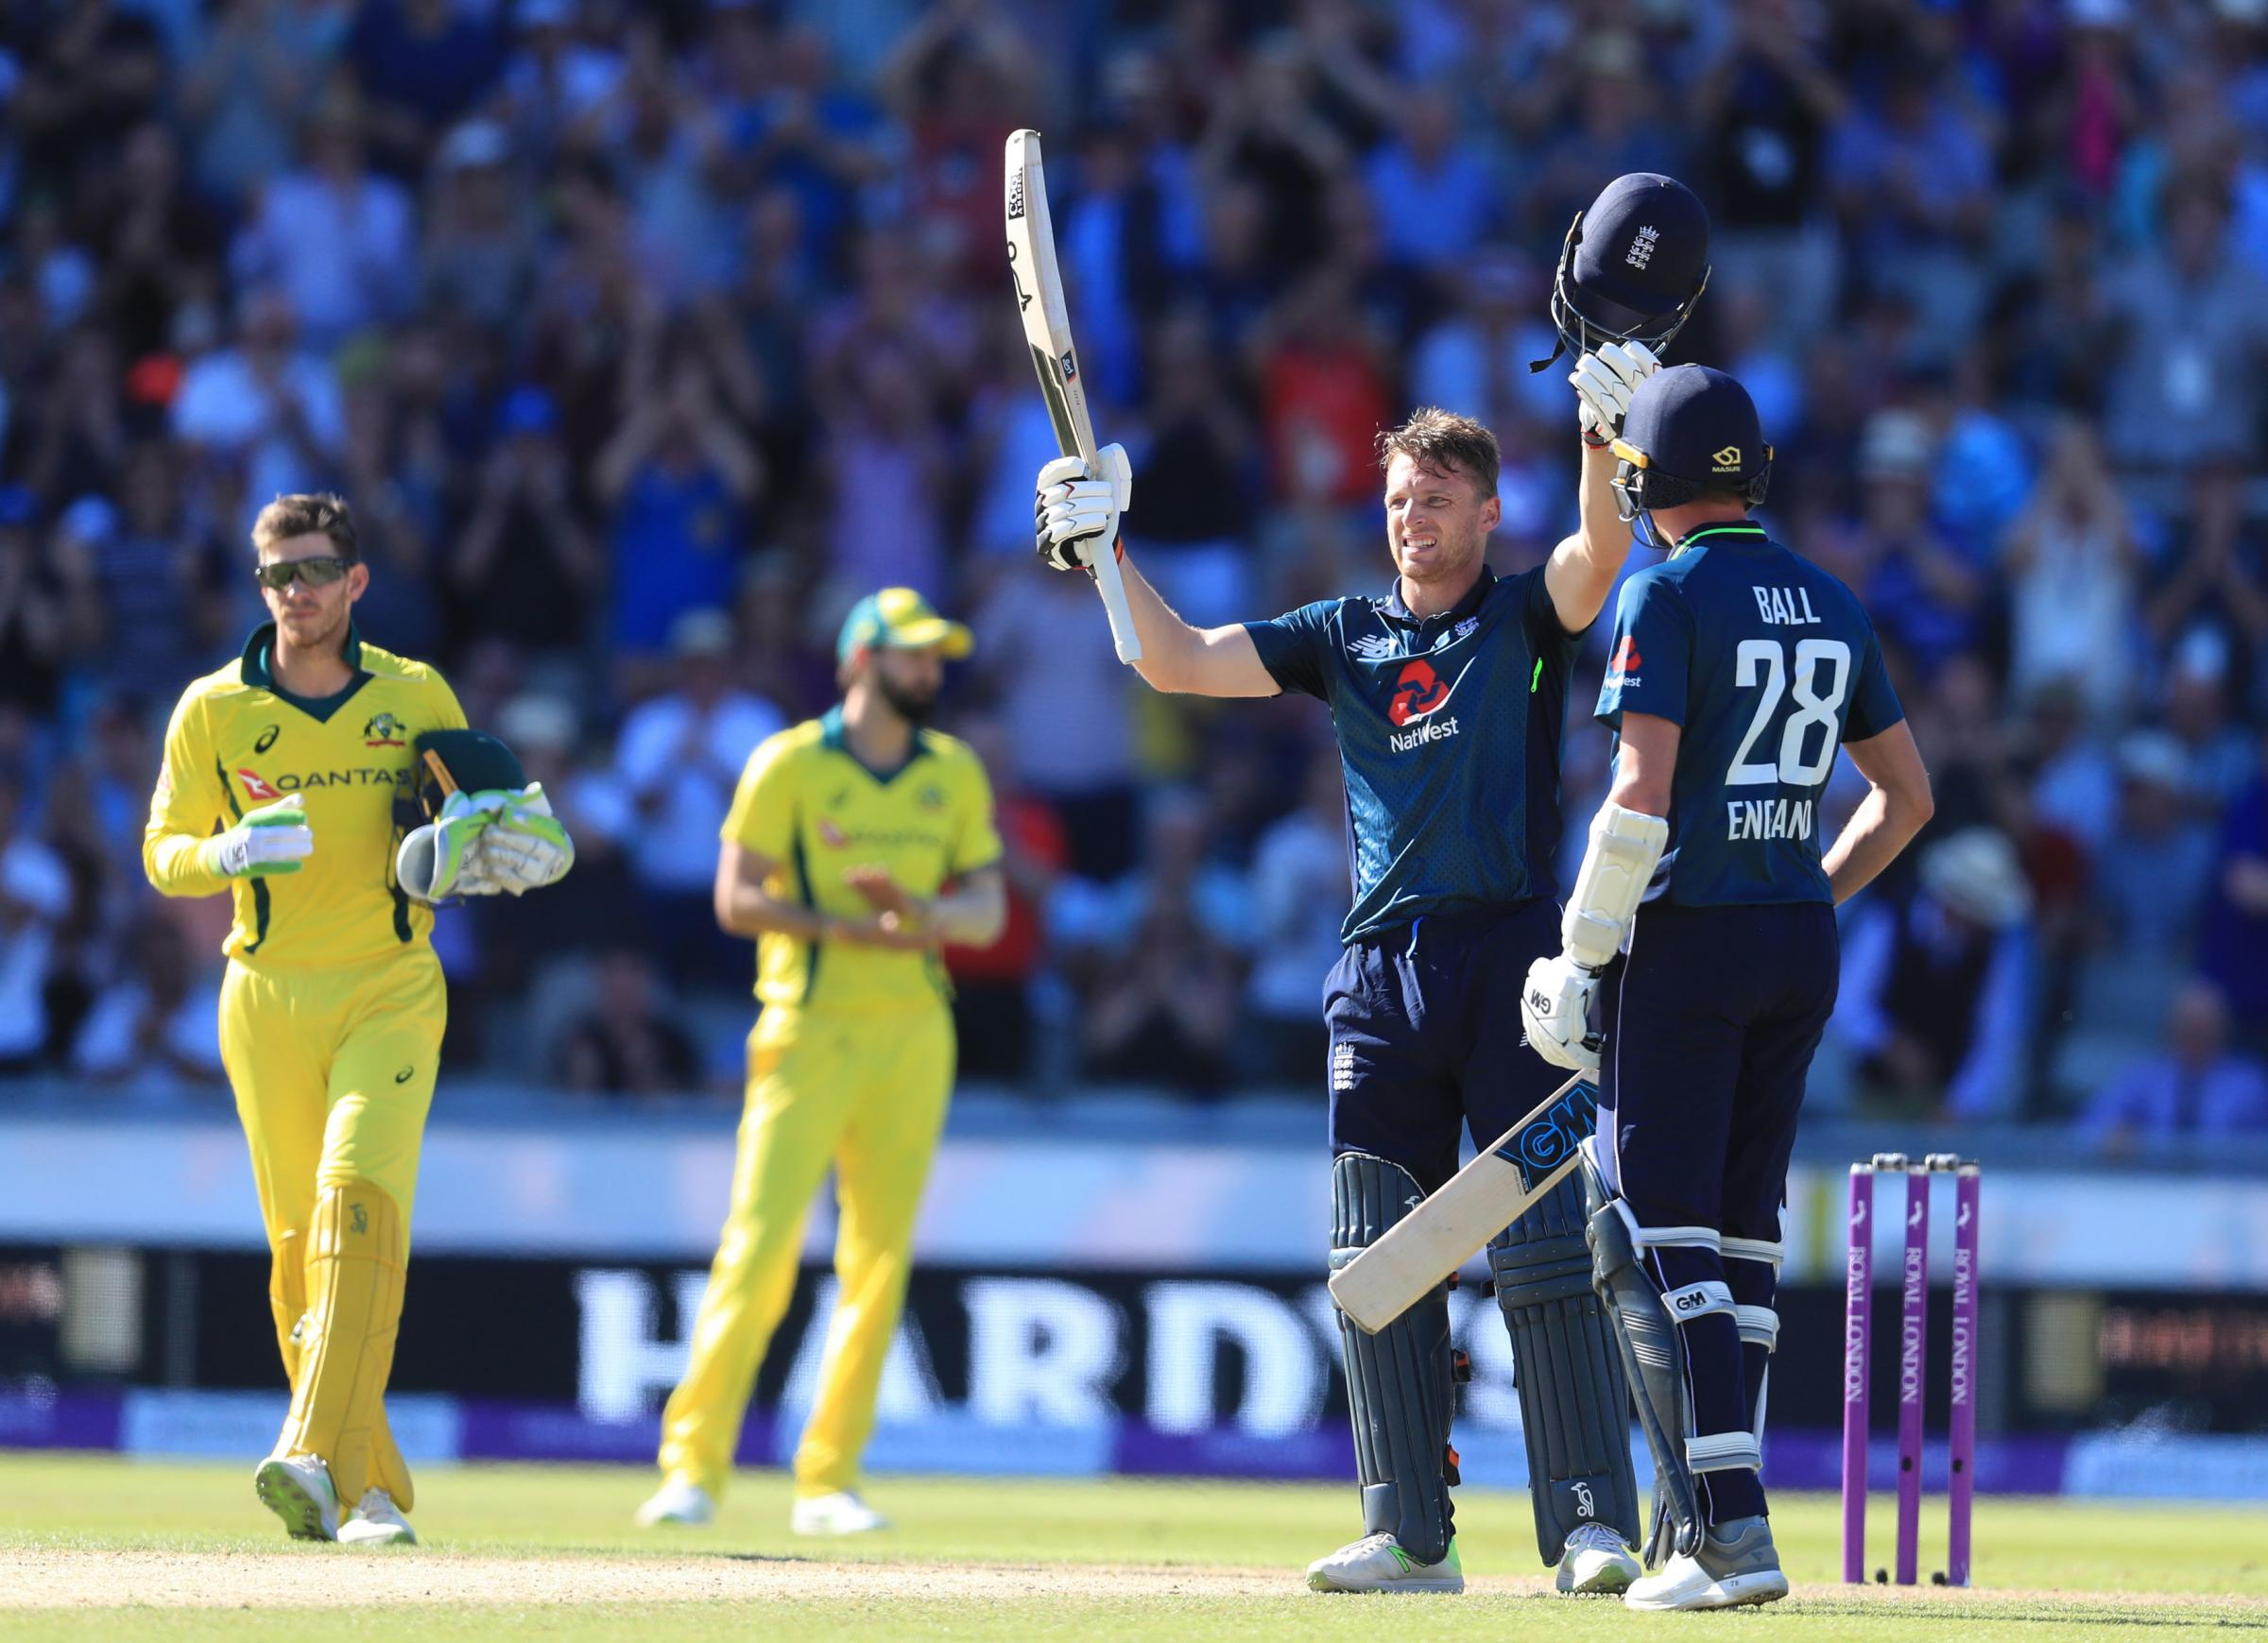 SALUTE: Jos Buttler celebrates his century against Australia at Old Trafford. Pic: PA Wire/Mike Egerton